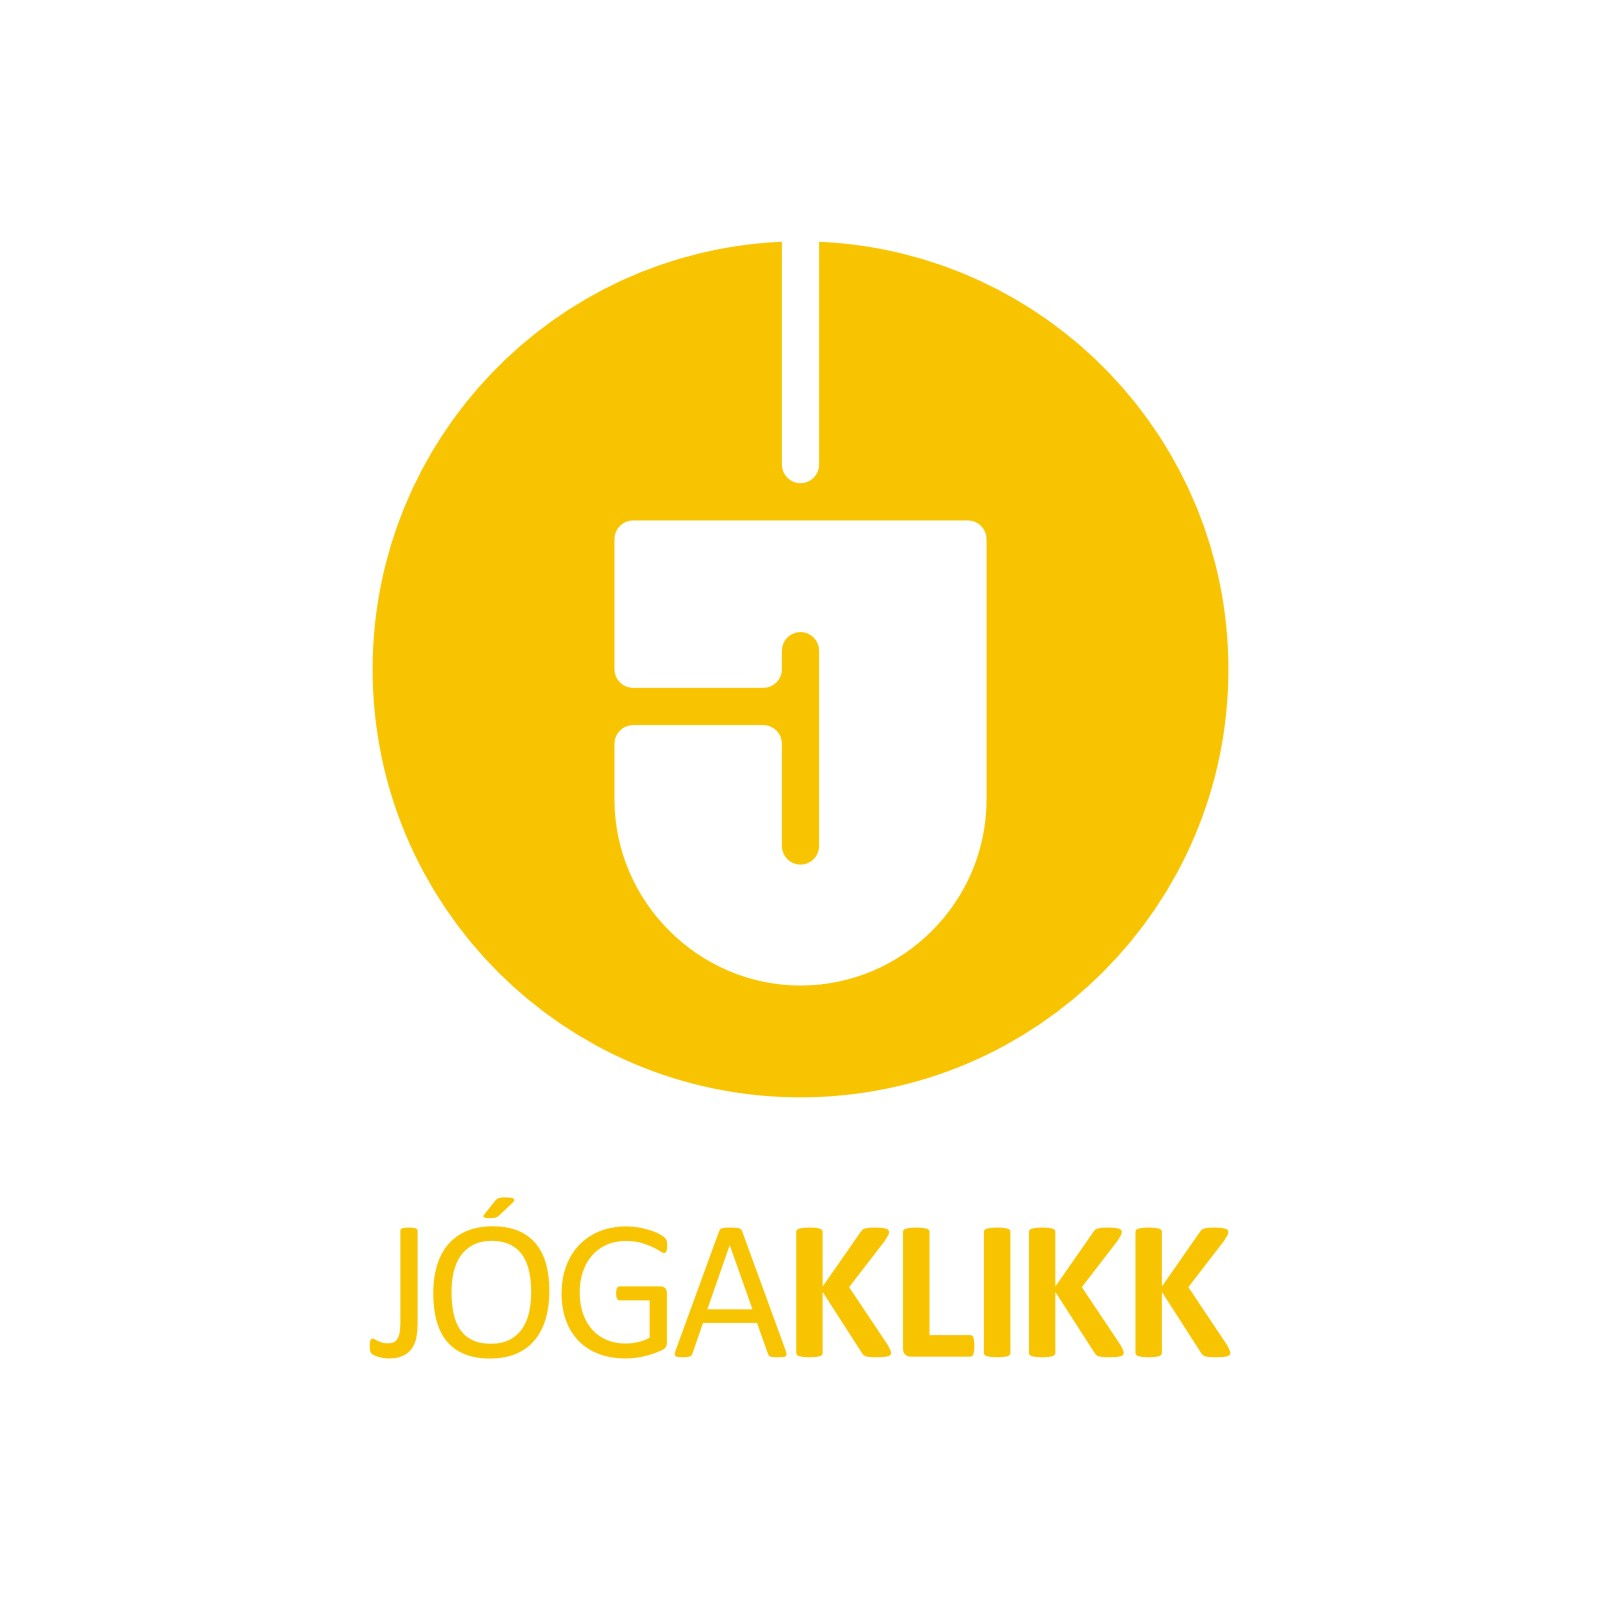 Jógaklikk - online marketing, főkép